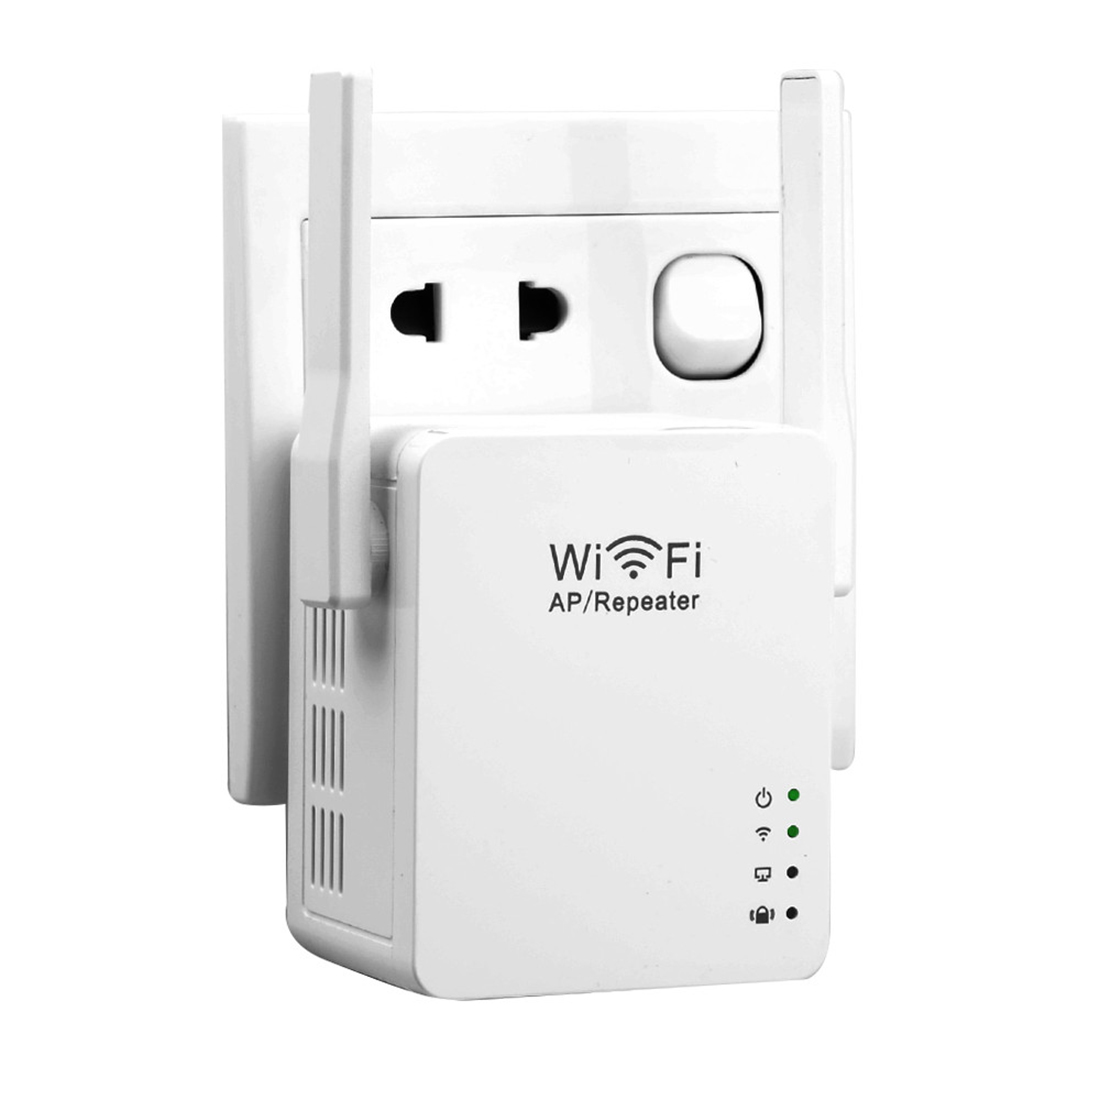 NOYOKERE New USB WiFi Repeater WiFi Range Extender with Micro USB2.0 Port 5V/2A Support Booster and AP Mode EU/US/UK/AU Plug